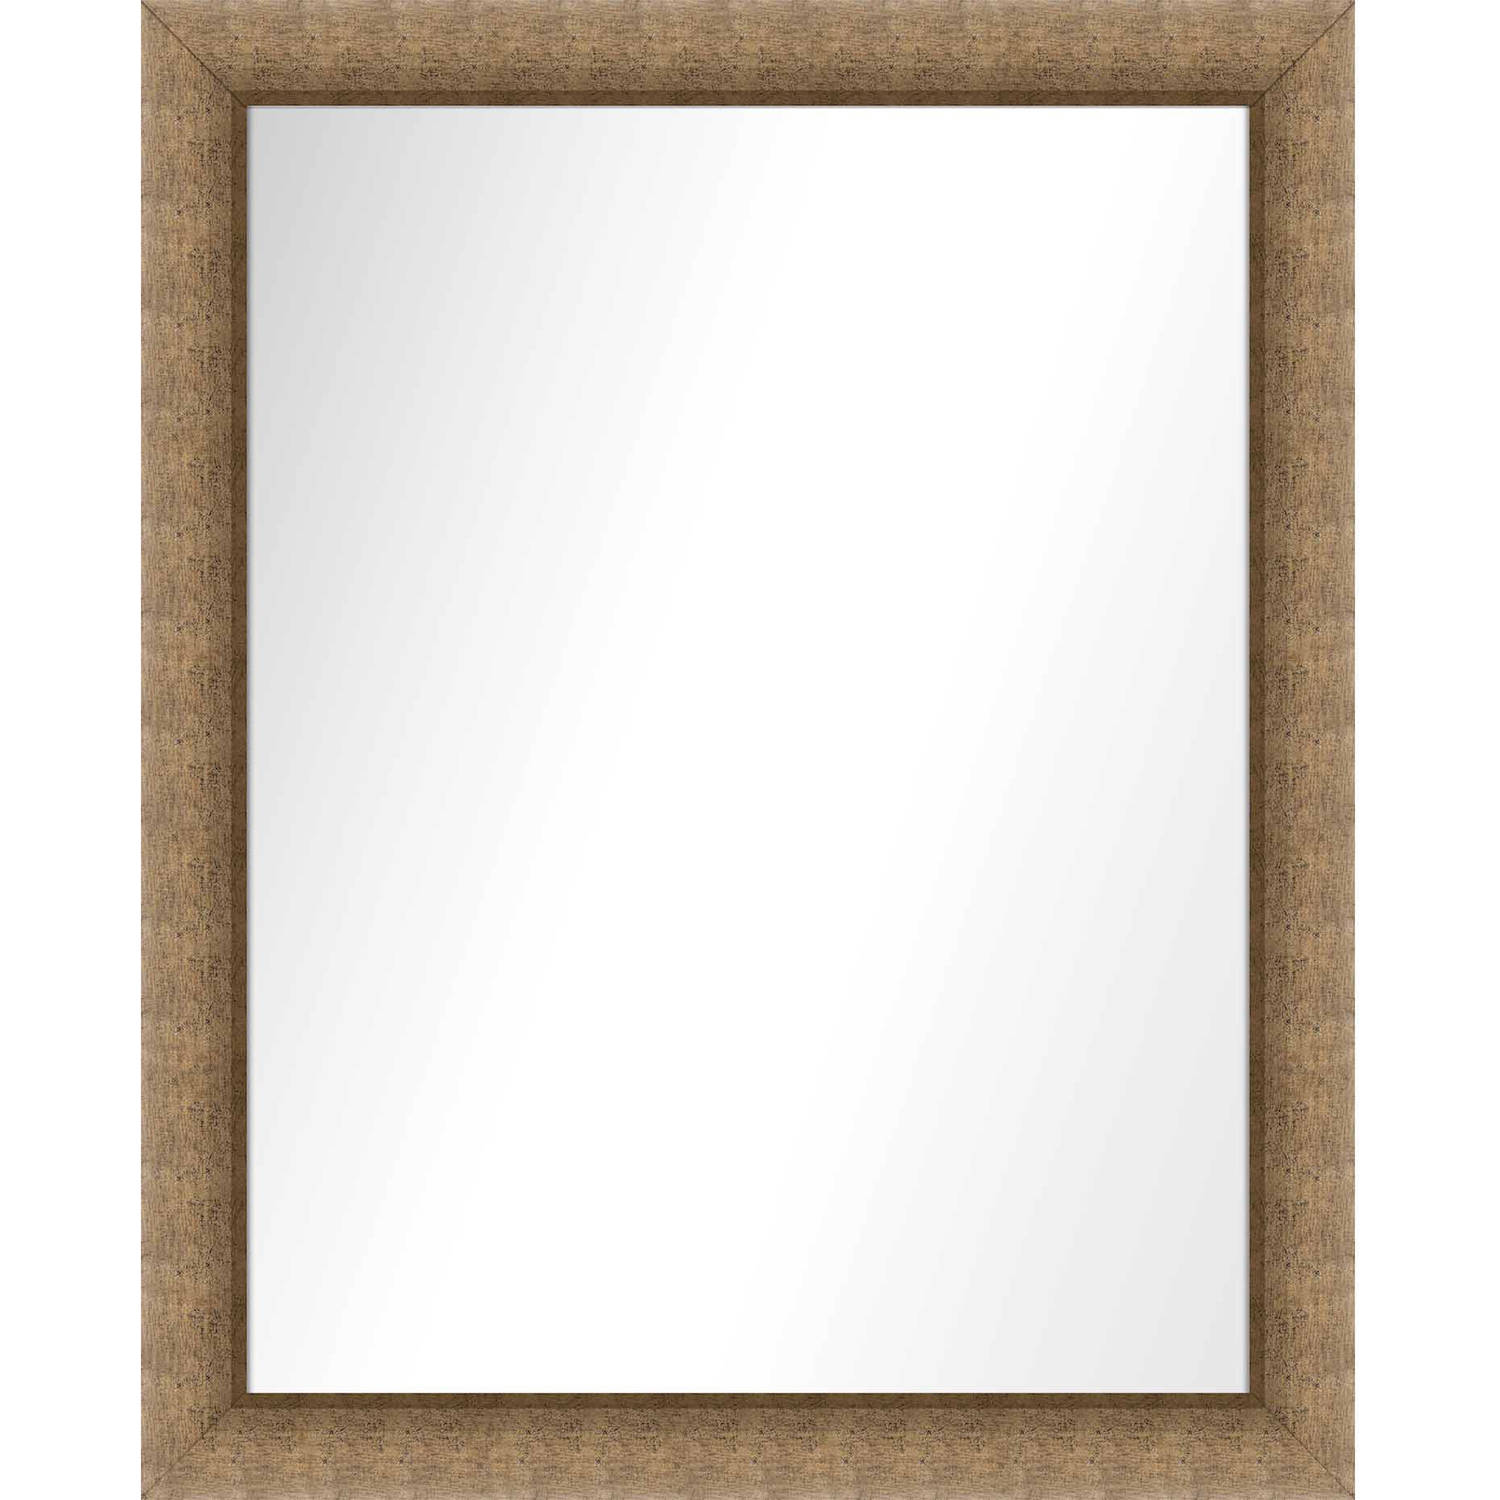 Vanity Mirror, Dark Champagne, 25.5x31.5 by PTM Images